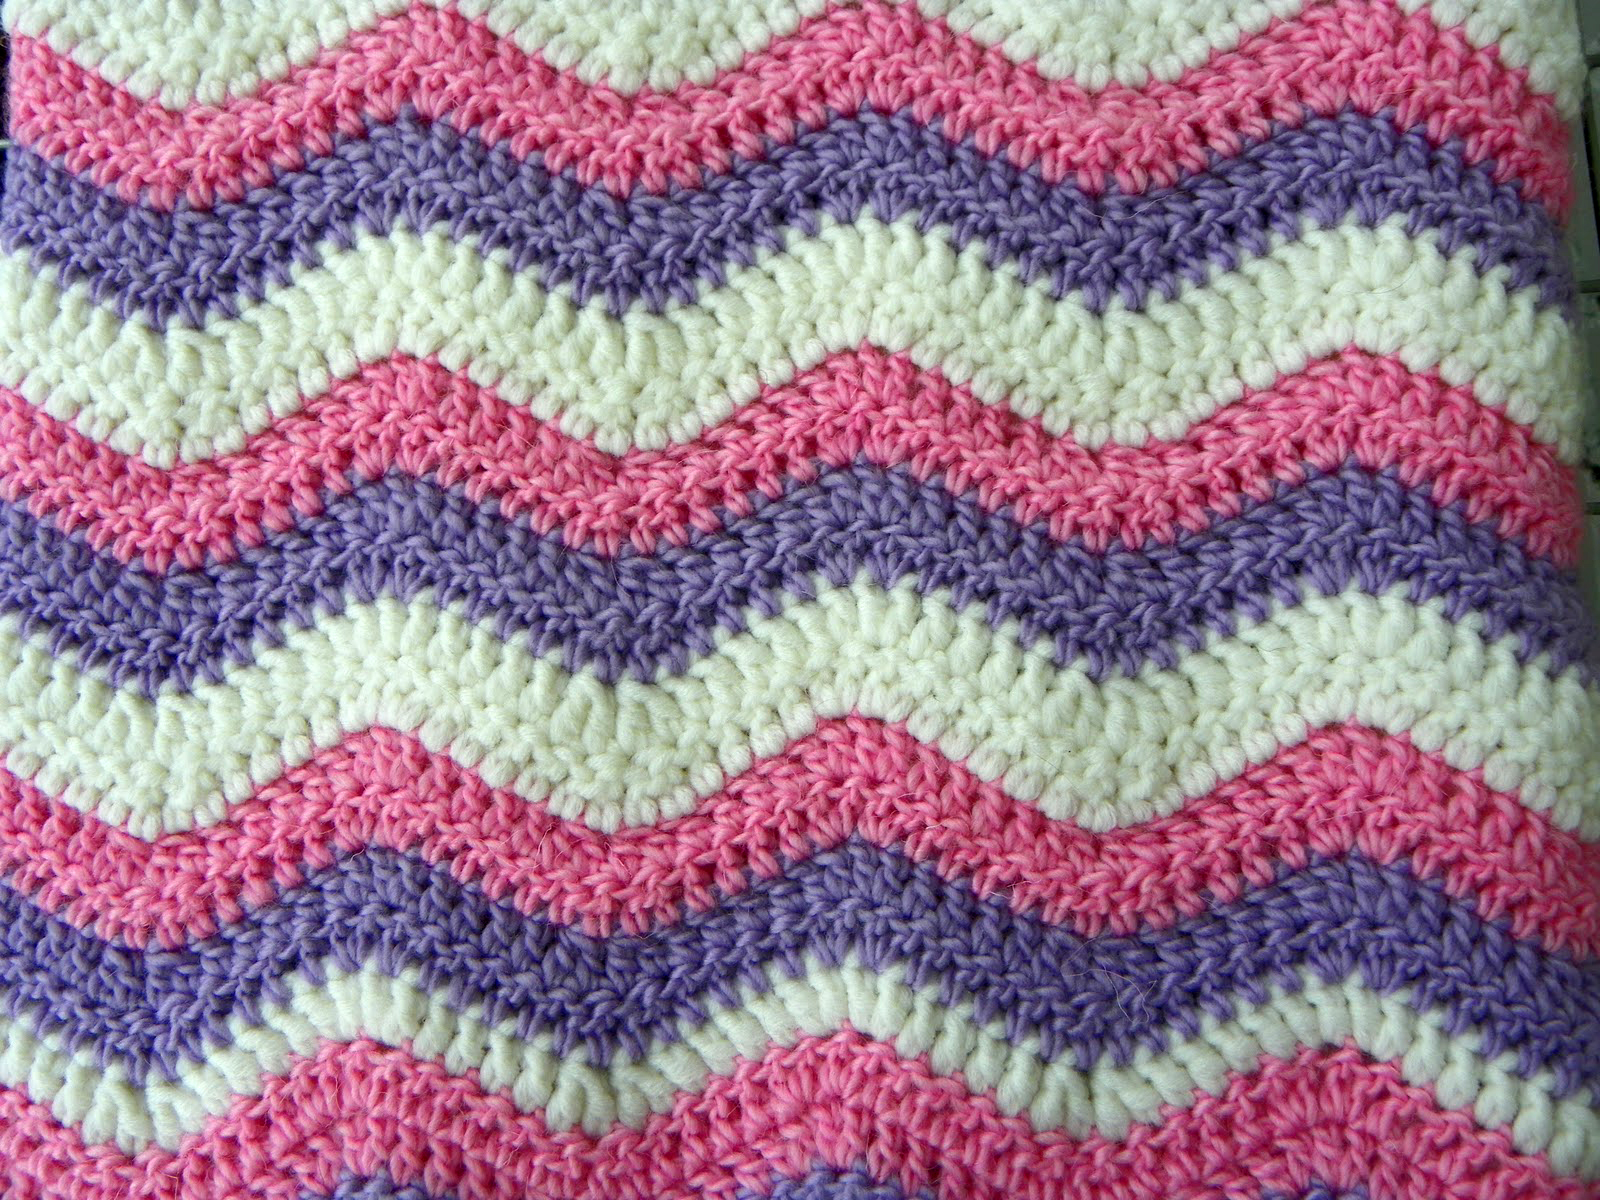 How To Crochet A Ripple Blanket Baby ripple blanket - ta-dah!